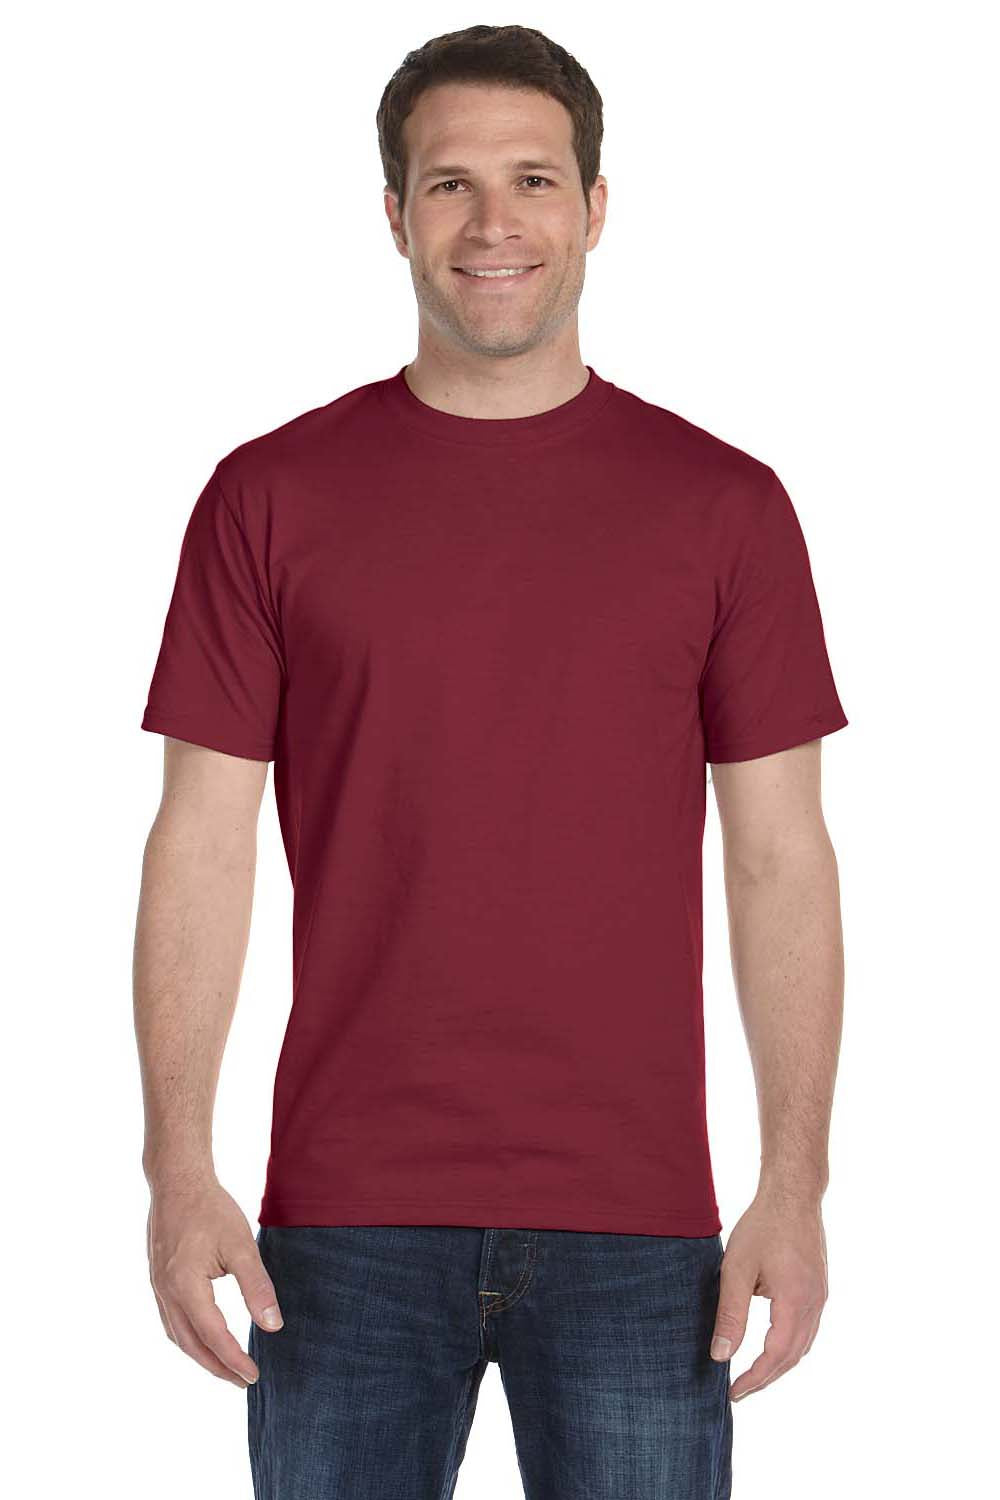 Hanes 5180 Mens Beefy-T Short Sleeve Crewneck T-Shirt Cardinal Red Front